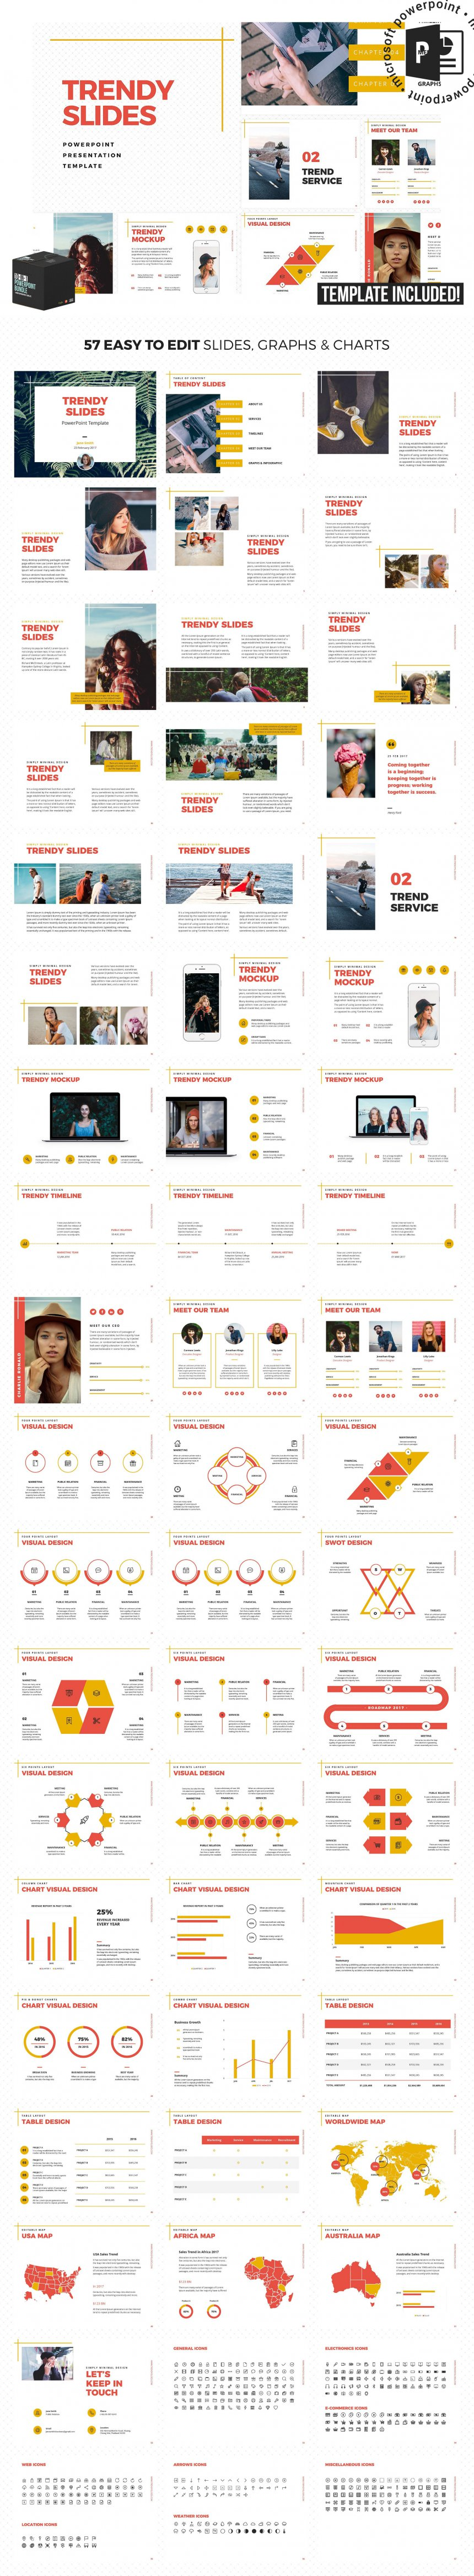 10 creative and professional powerpoint templates plus bonuses trendy slides powerpoint template toneelgroepblik Image collections